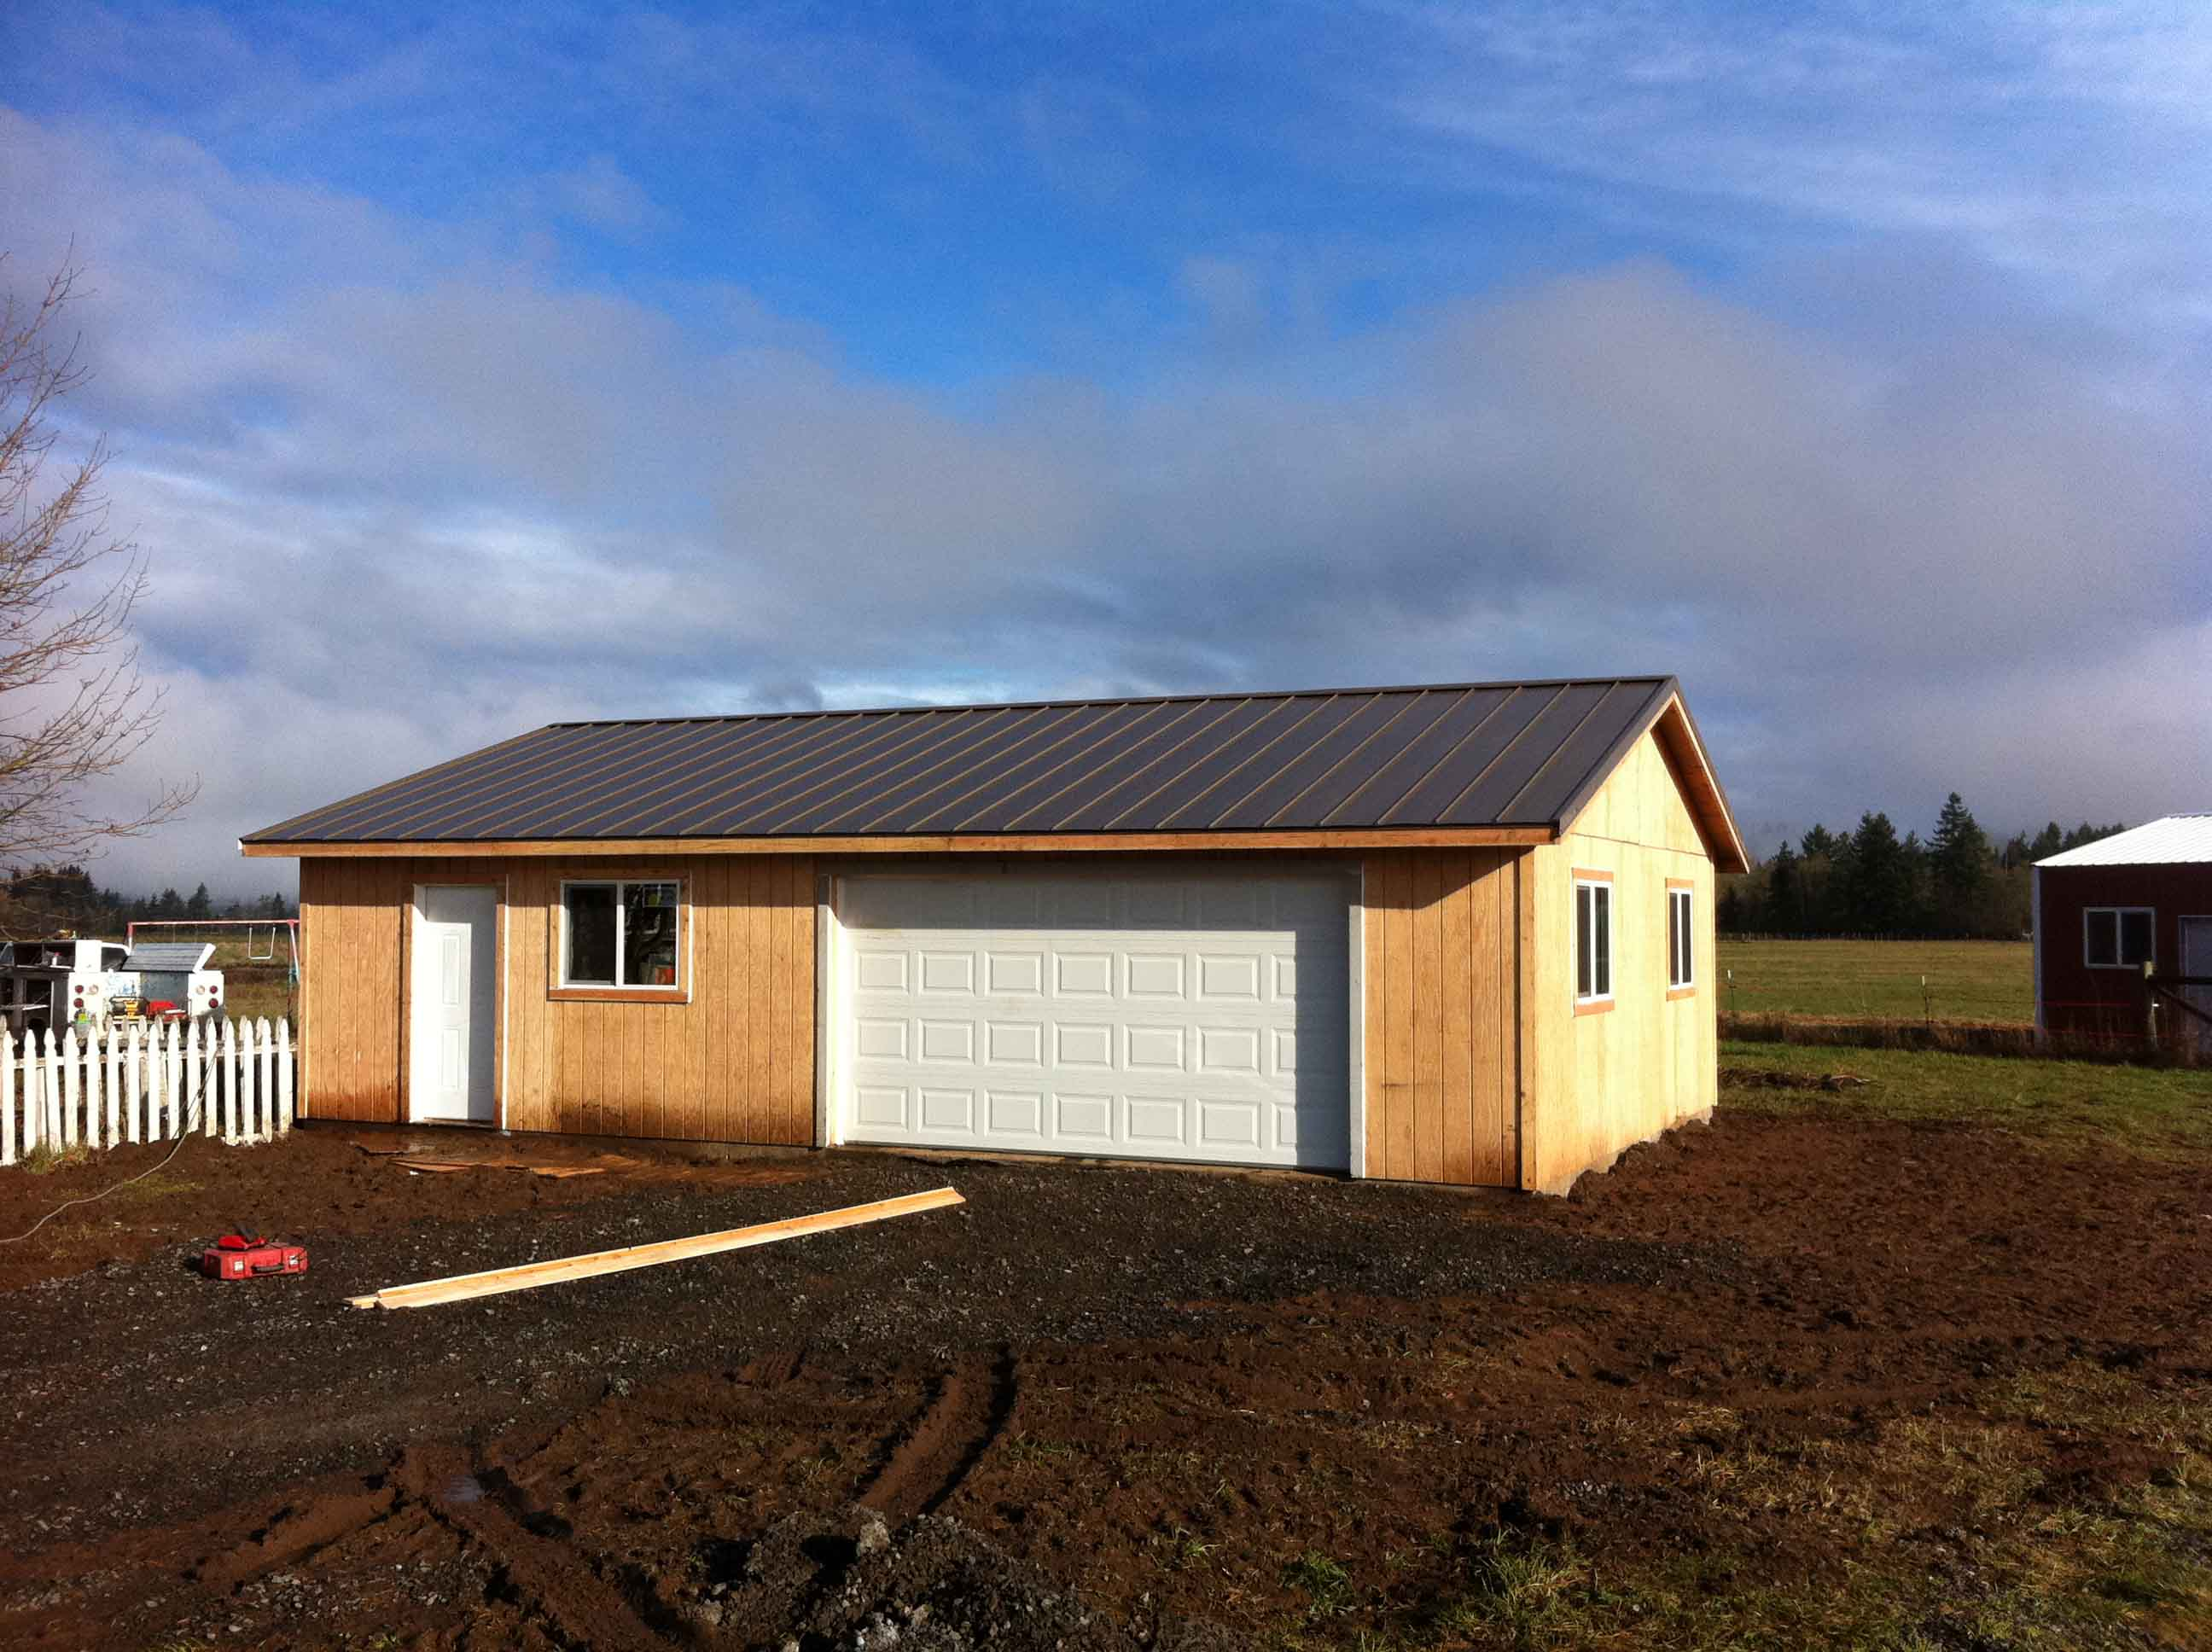 Garage with comp roofing